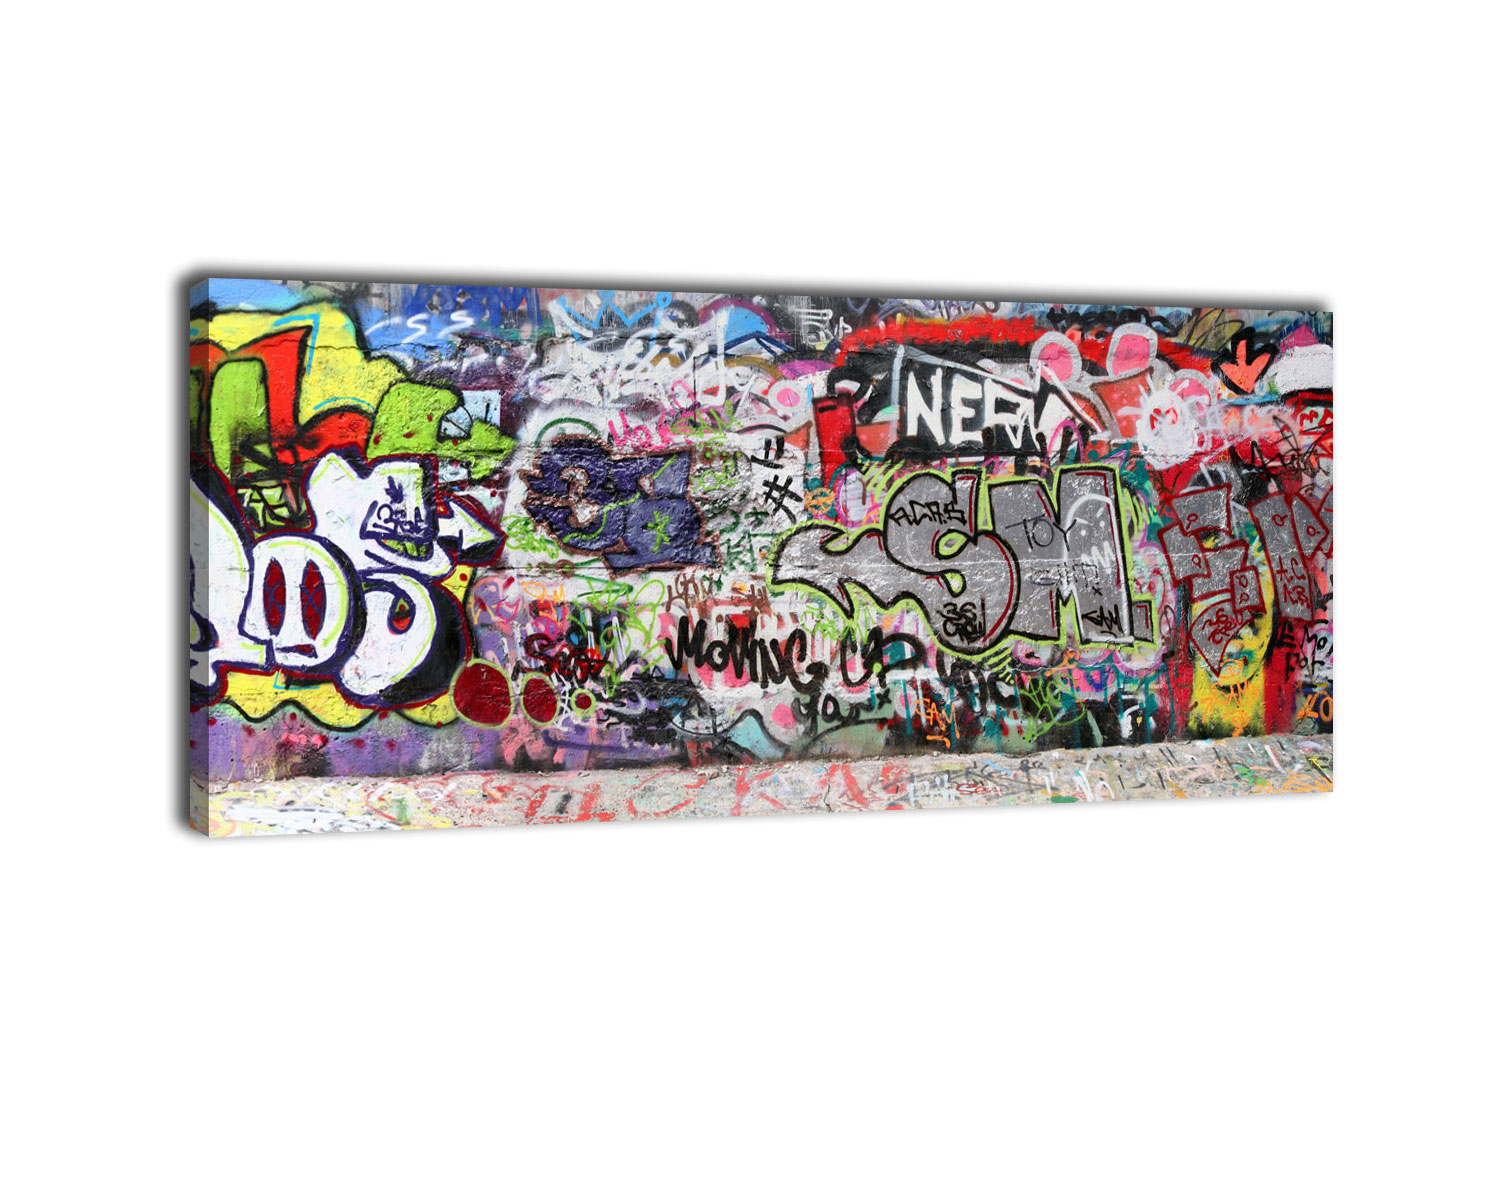 leinwandbild graffiti 3 bild auf leinwand kunstdruck ebay. Black Bedroom Furniture Sets. Home Design Ideas